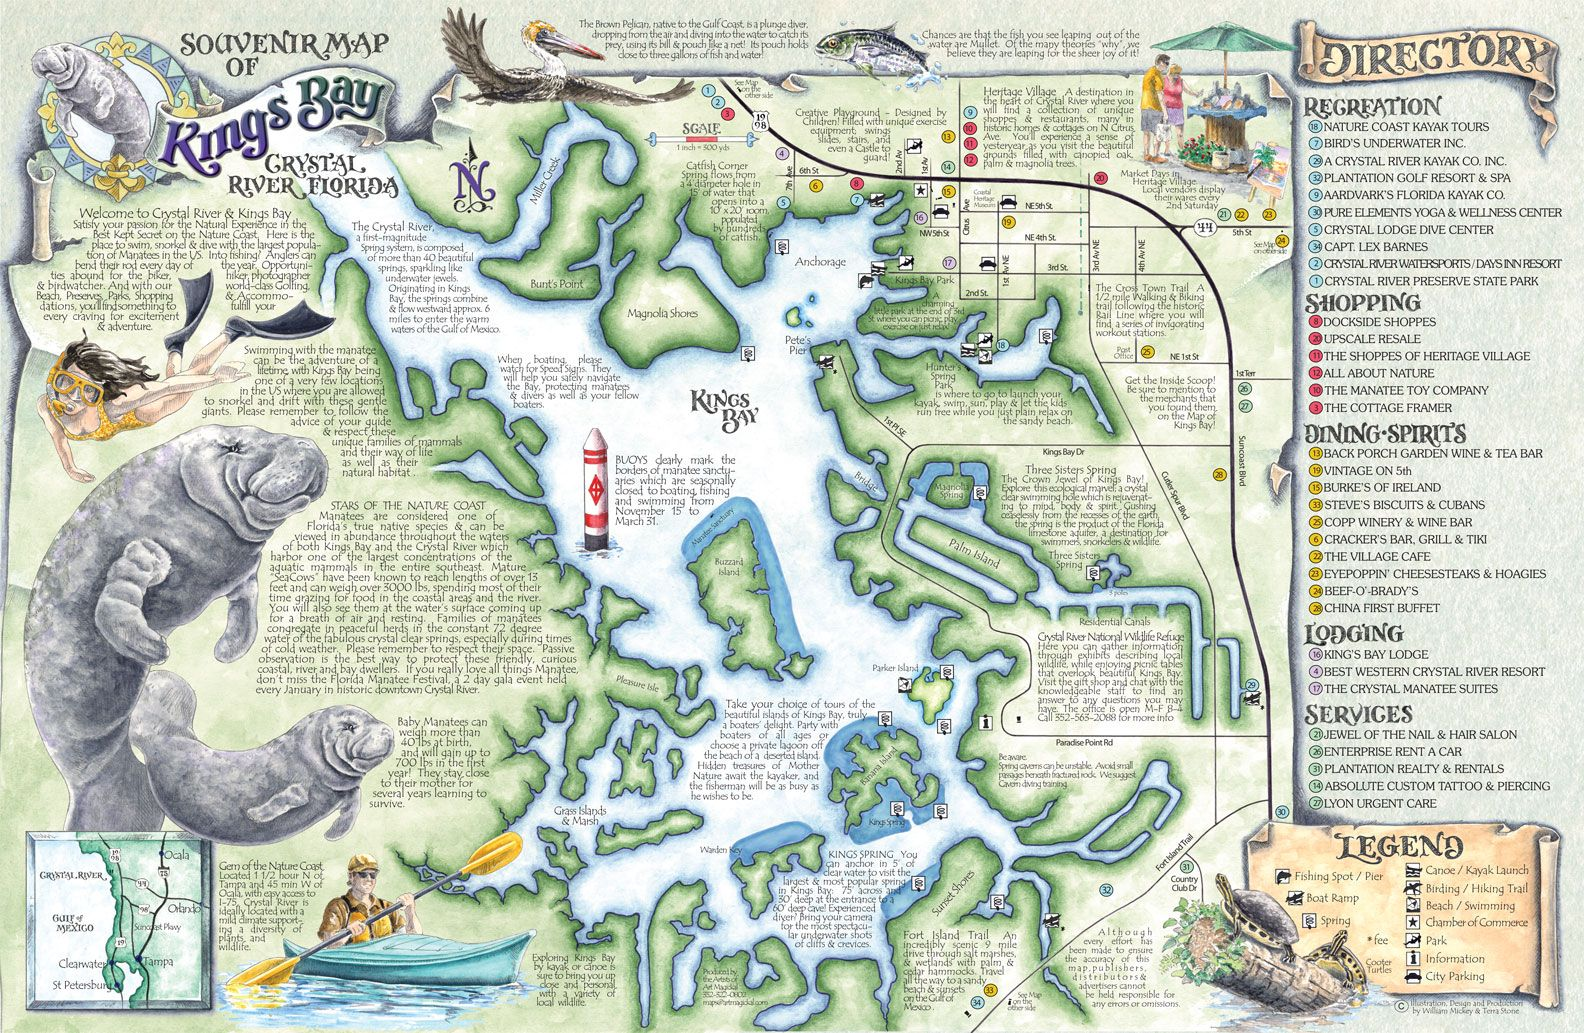 Crystal Rivers Spring Maps The Souvenir Map  Guide Of Kings - Los angeles river kayak map